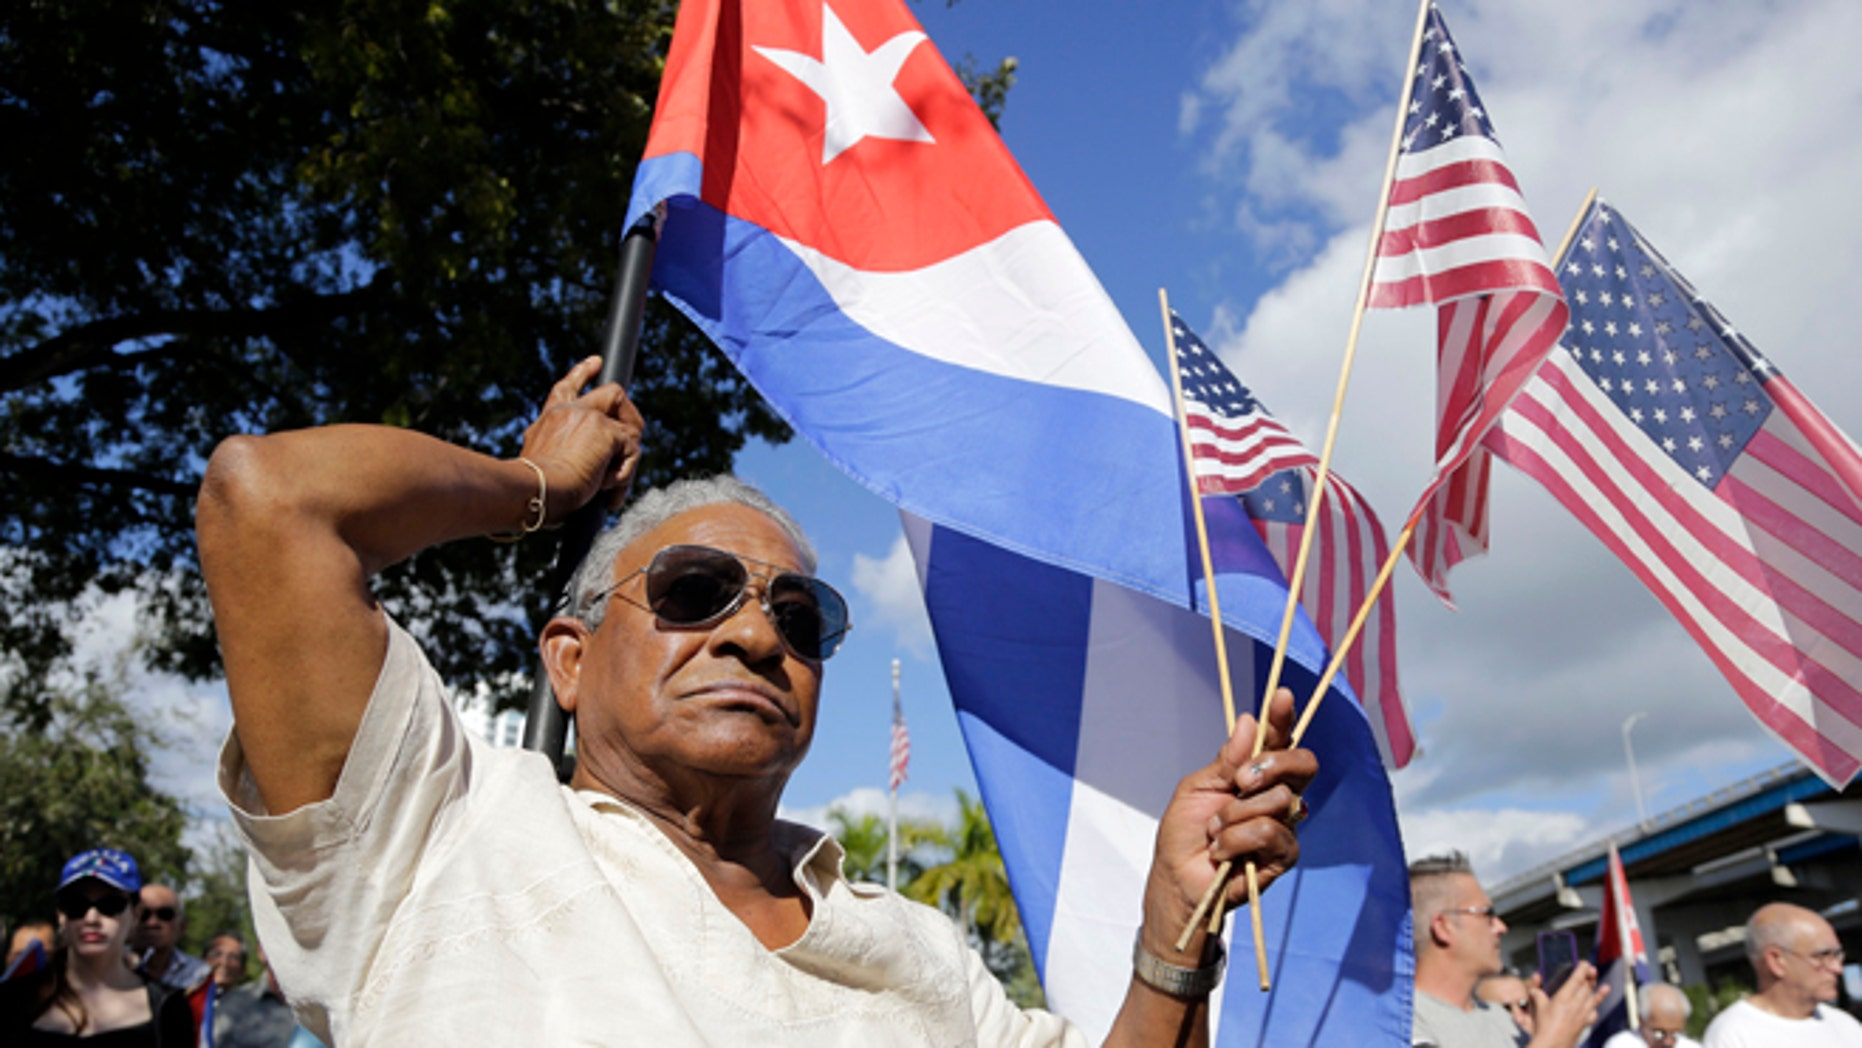 Evilio Ordonez holds Cuban and American flags during a protest against President Barack Obama's plan to normalize relations with Cuba, Saturday, Dec, 20, 2014, in the Little Havana neighborhood of Miami. Florida newspaper editors voted President Barack Obama's mid-December move to normalize relations with Cuba as one of the top stories of the year. (AP Photo/Lynne Sladky)